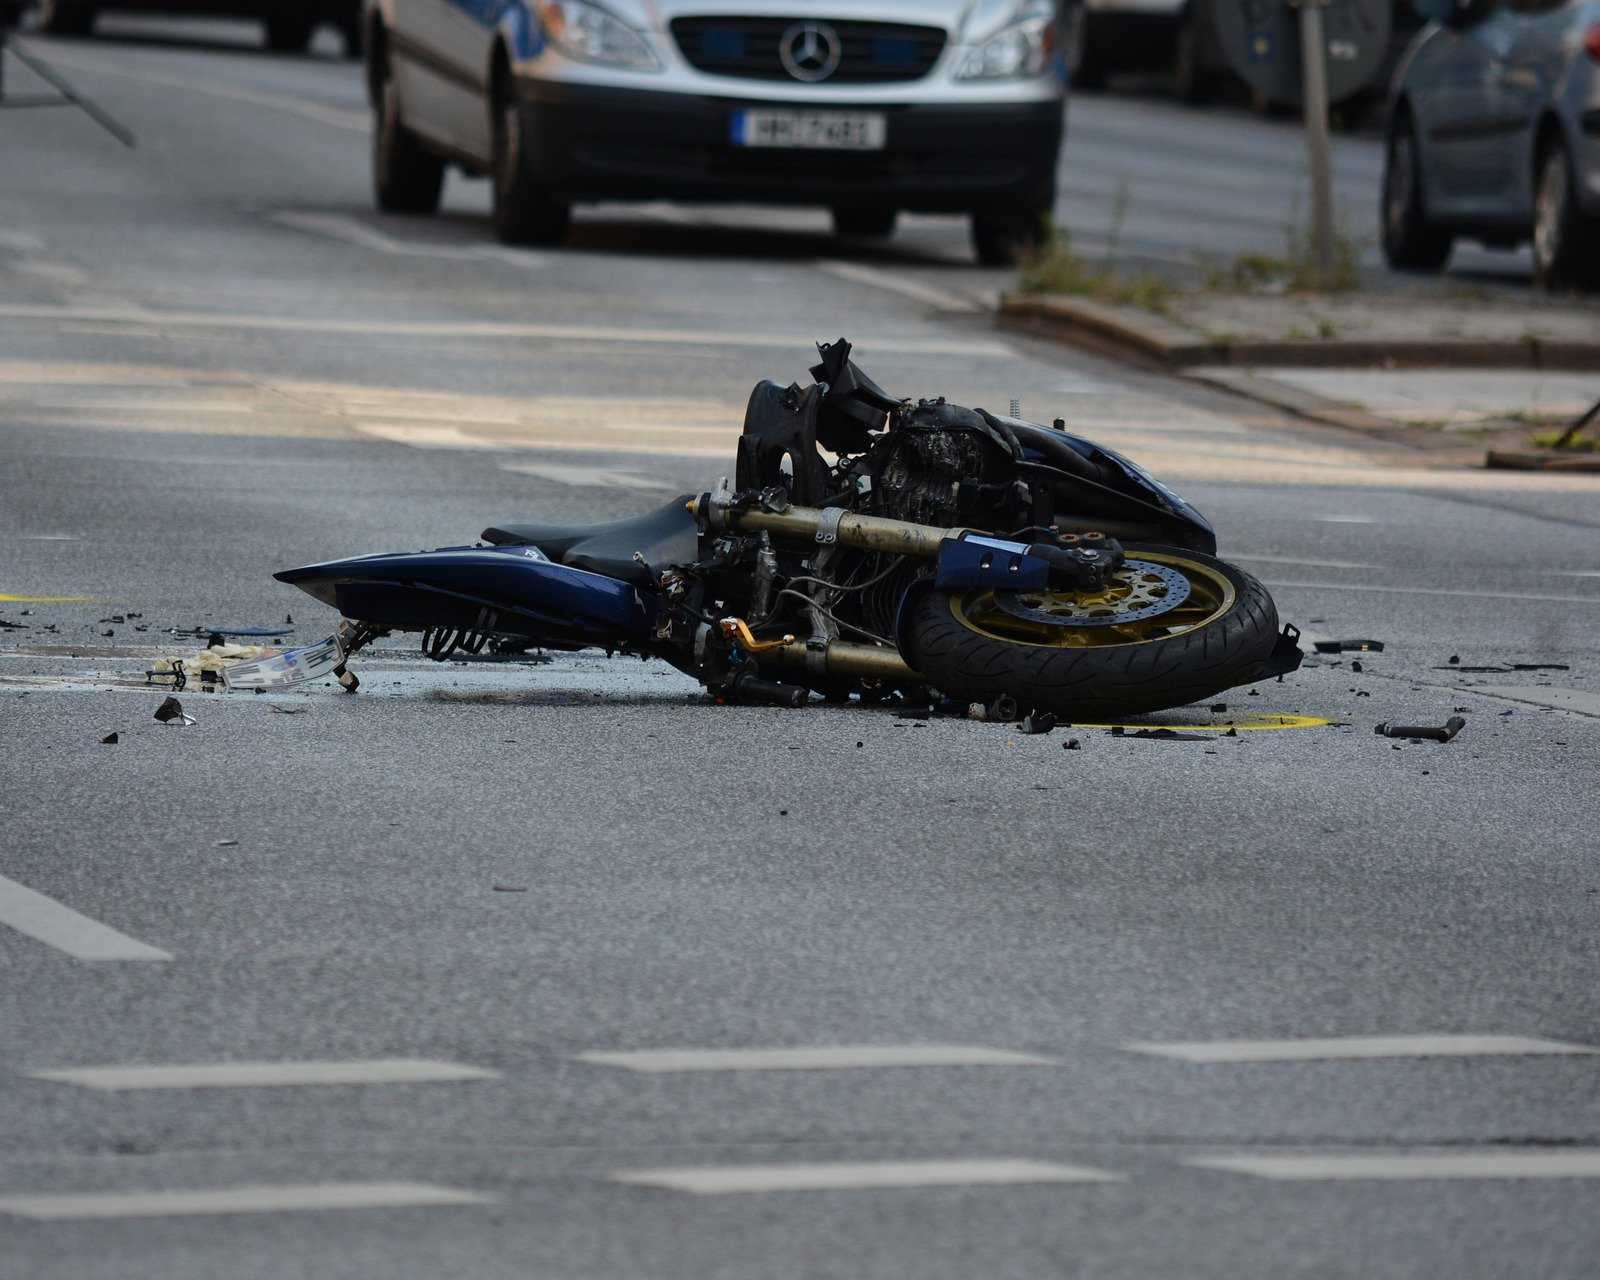 Crashed motocycle laying on the ground in the middle of the road - Spitzer Legal Motorcycle Accident Practice Area